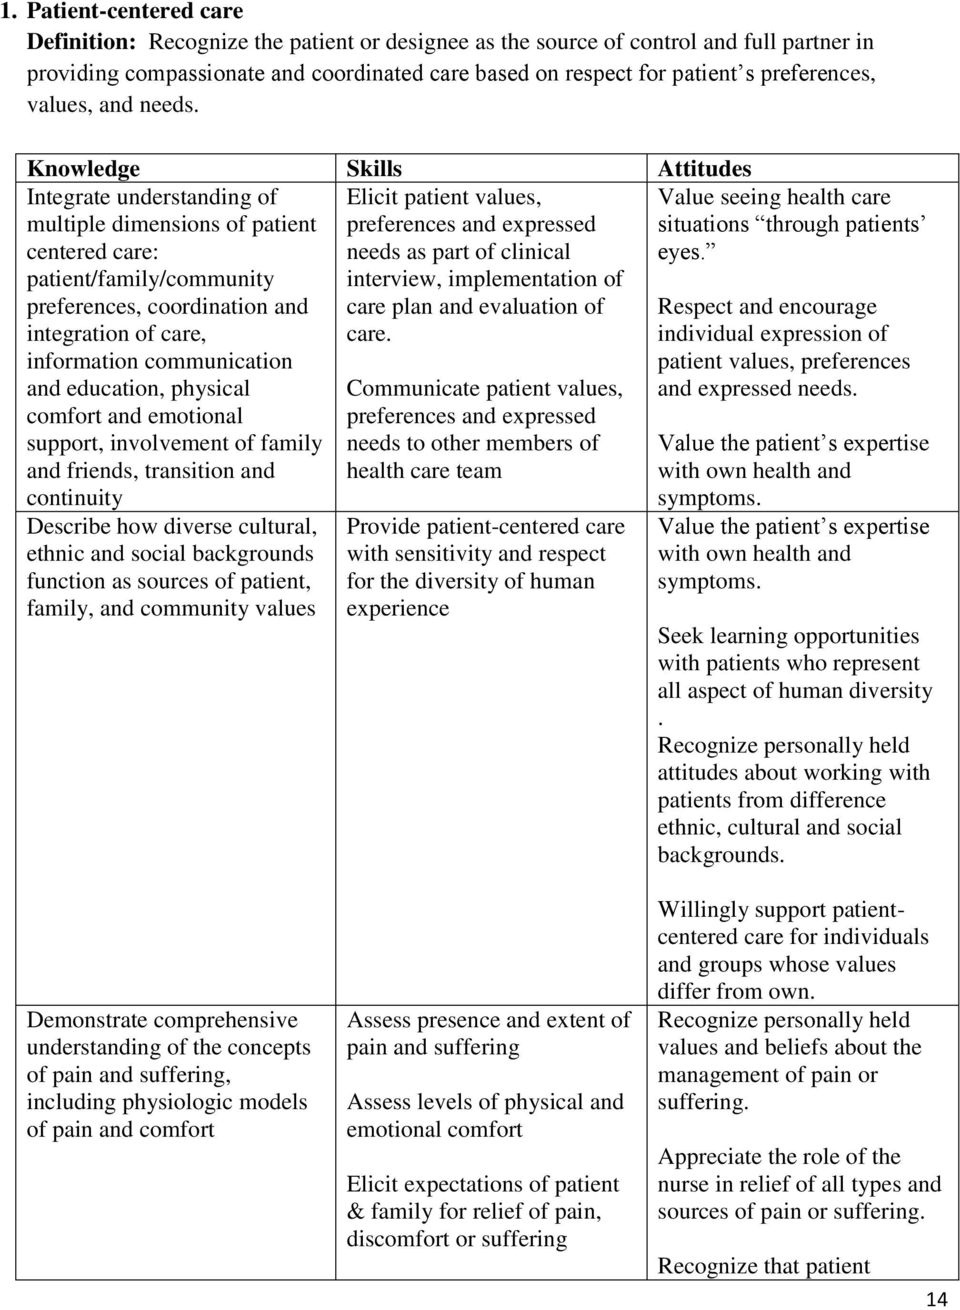 Knowledge Skills Attitudes Integrate understanding of multiple dimensions of patient centered care: patient/family/community preferences, coordination and integration of care, information